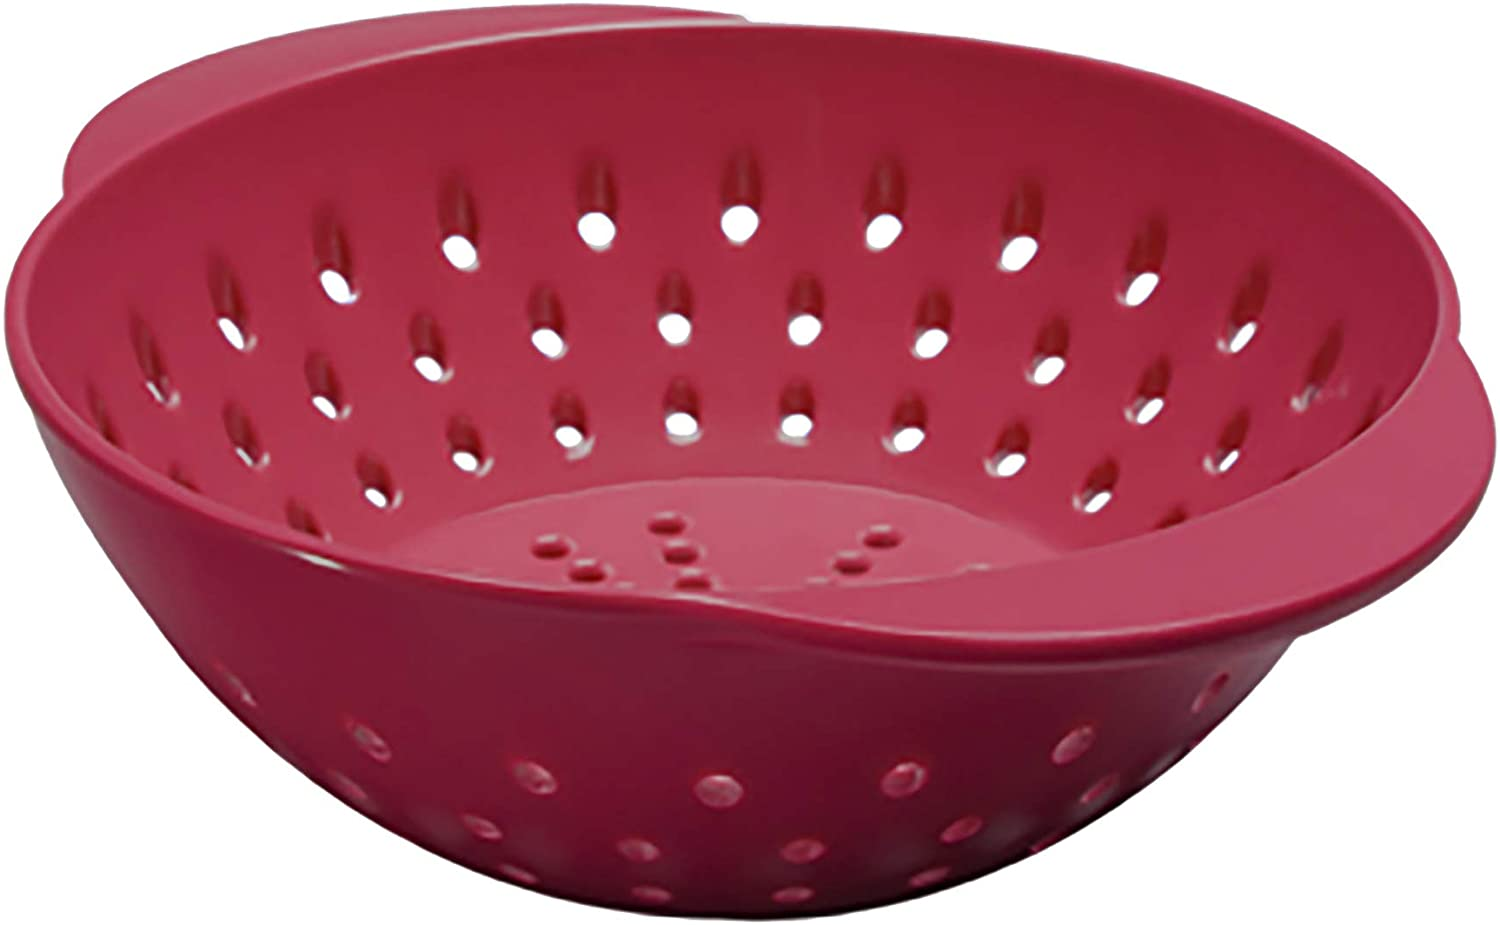 Tovolo Mini Quick Draining Berry Wash With Easy Grip Handles, Small Food Strainer for Berries & Fruit, Melamine Colander to Minimize Bruised Fruit, Cayenne Red